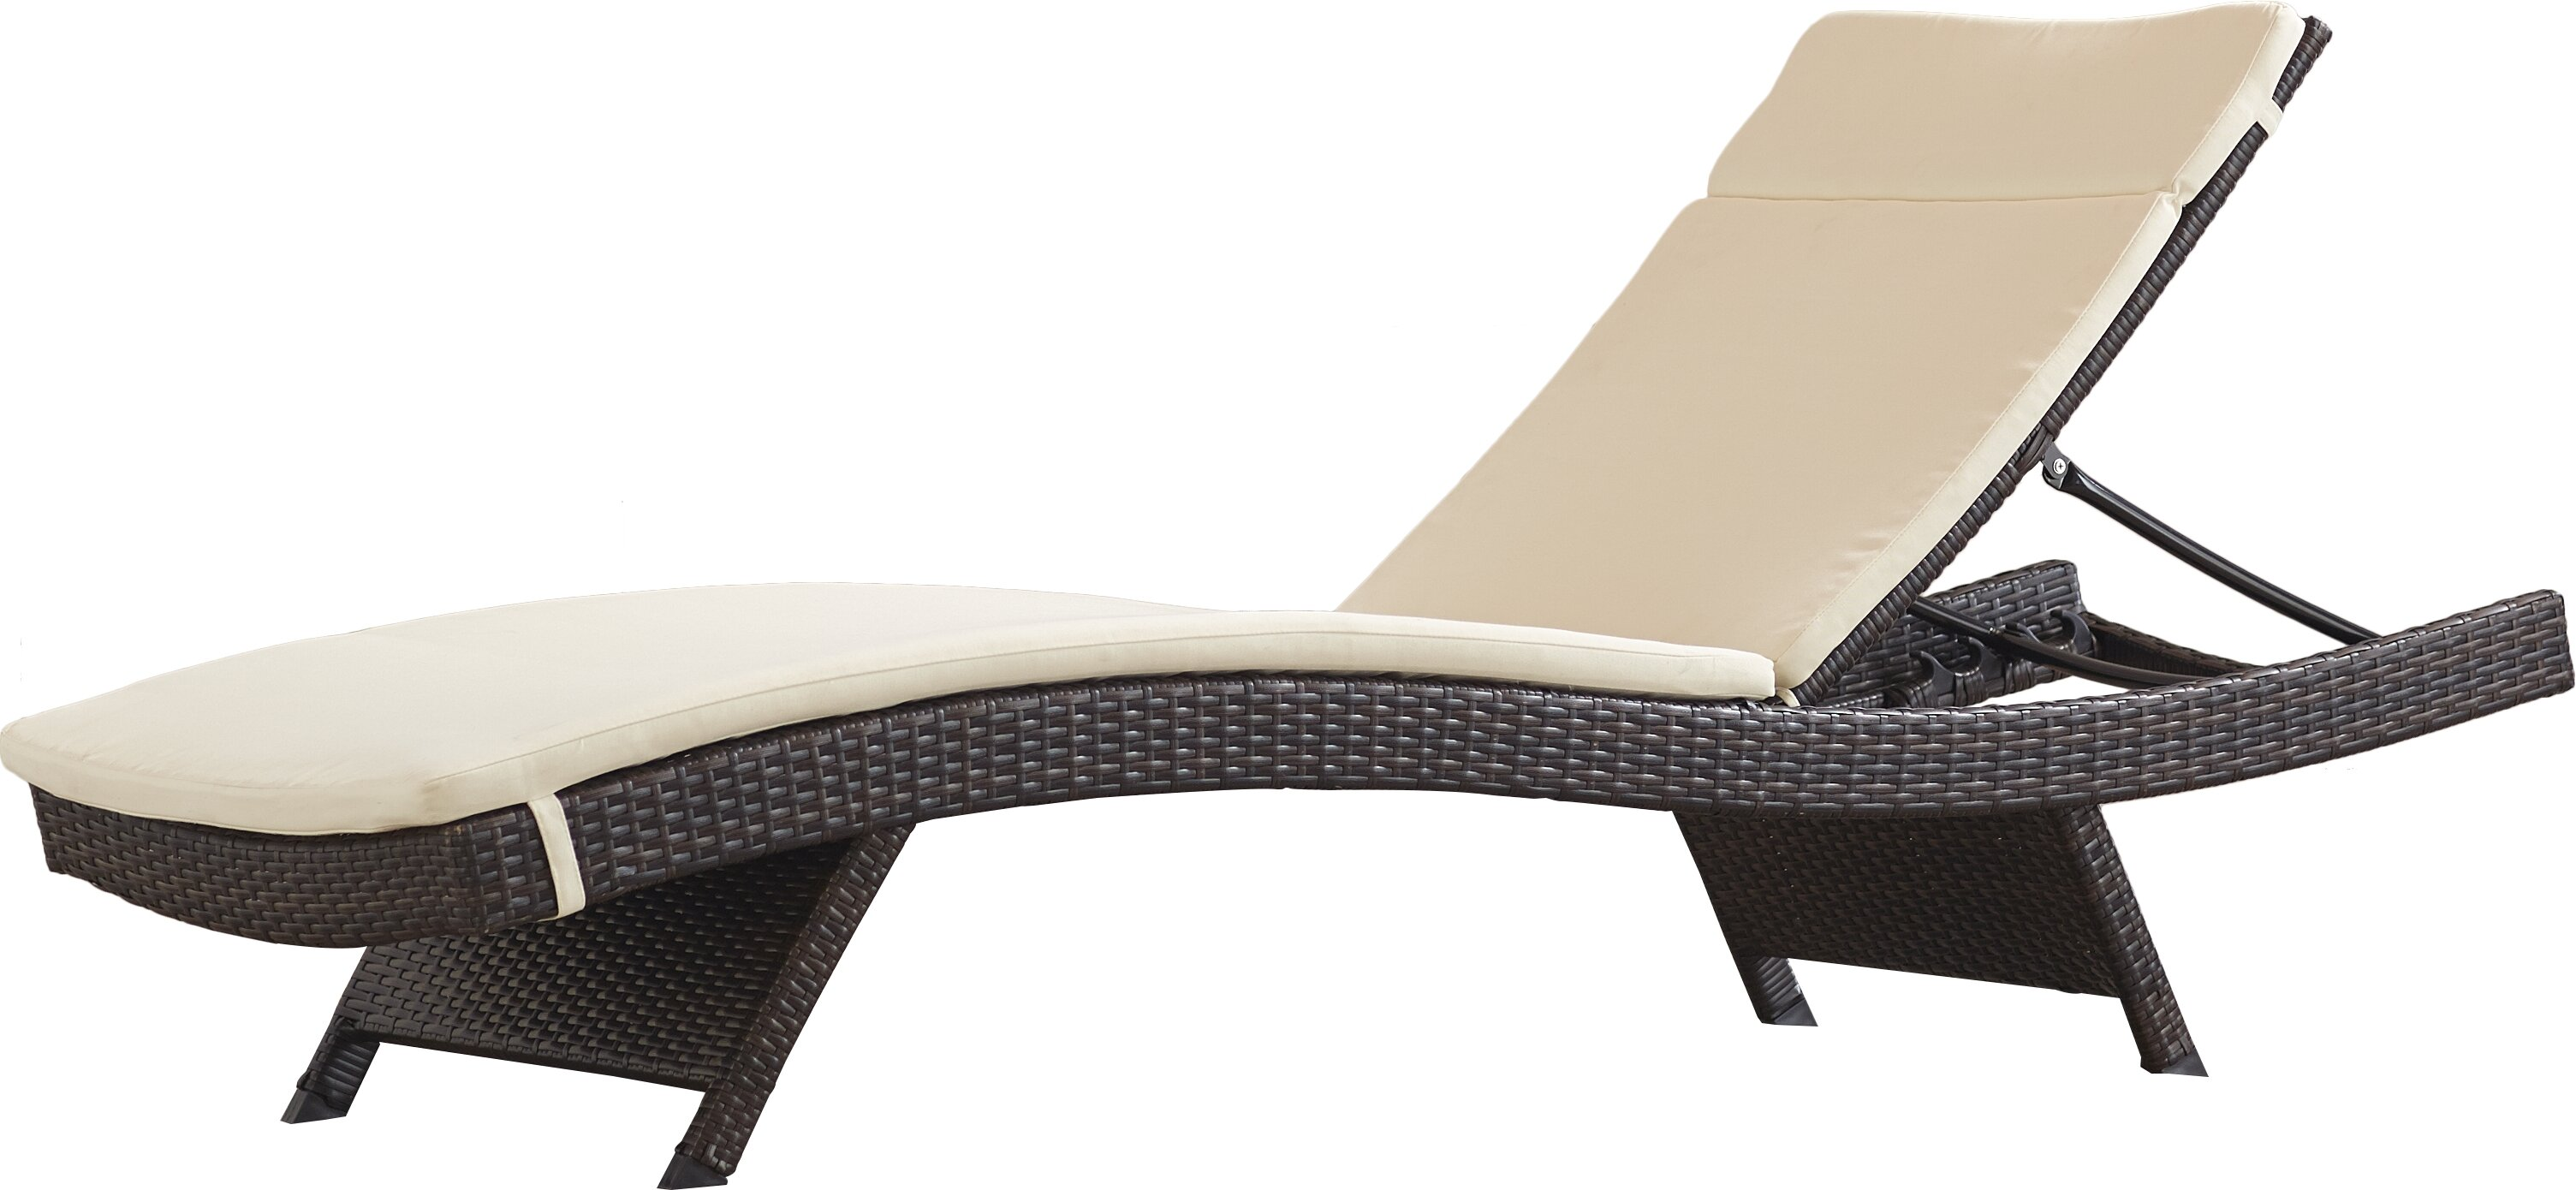 Elegant Patio Furniture Chaise Lounge